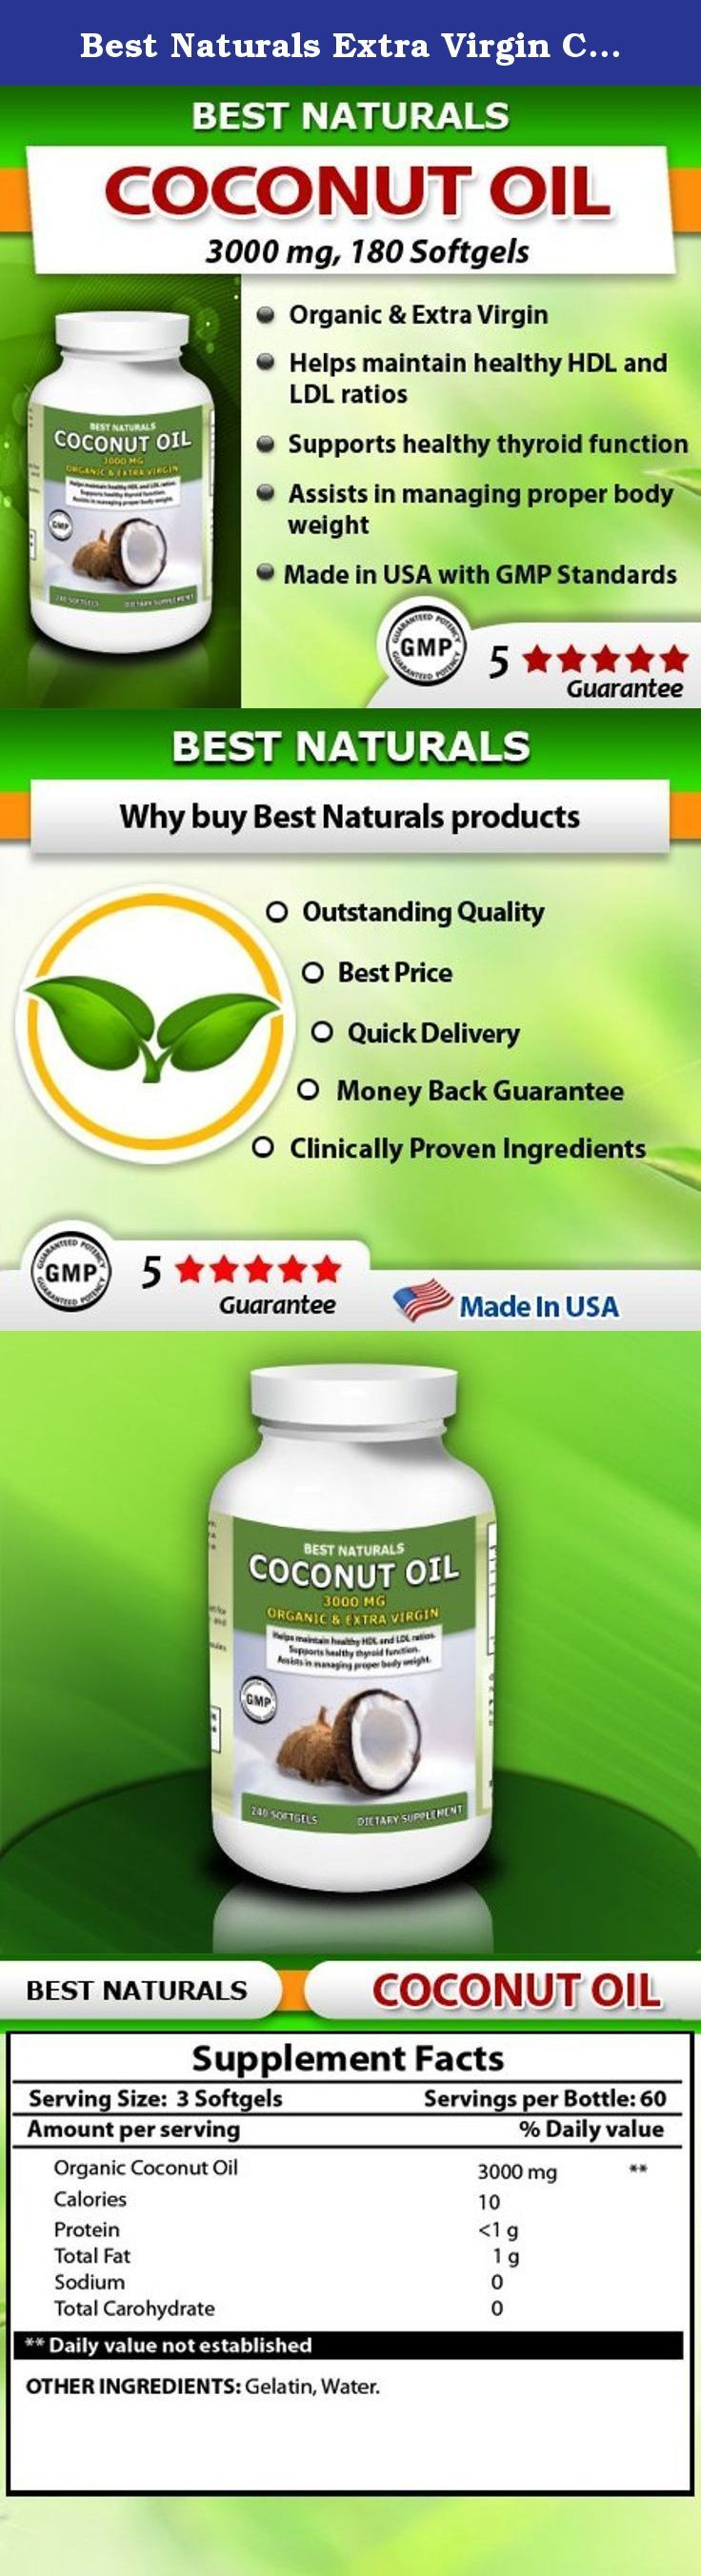 Best Naturals Extra Virgin Coconut Oil 1000 mg Softgel, 180 Count. Coconut oil is an edible oil that has been consumed in tropical places for thousands of years. Coconut is the fruit of the coconut palm. The oil of the nut (fruit) is used to make medicine. Coconut oil is high in a saturated fat called medium chain triglycerides. These fats work differently than other types of saturated fat in the body. However, research on the effects of these types of fats in the body is very preliminary.